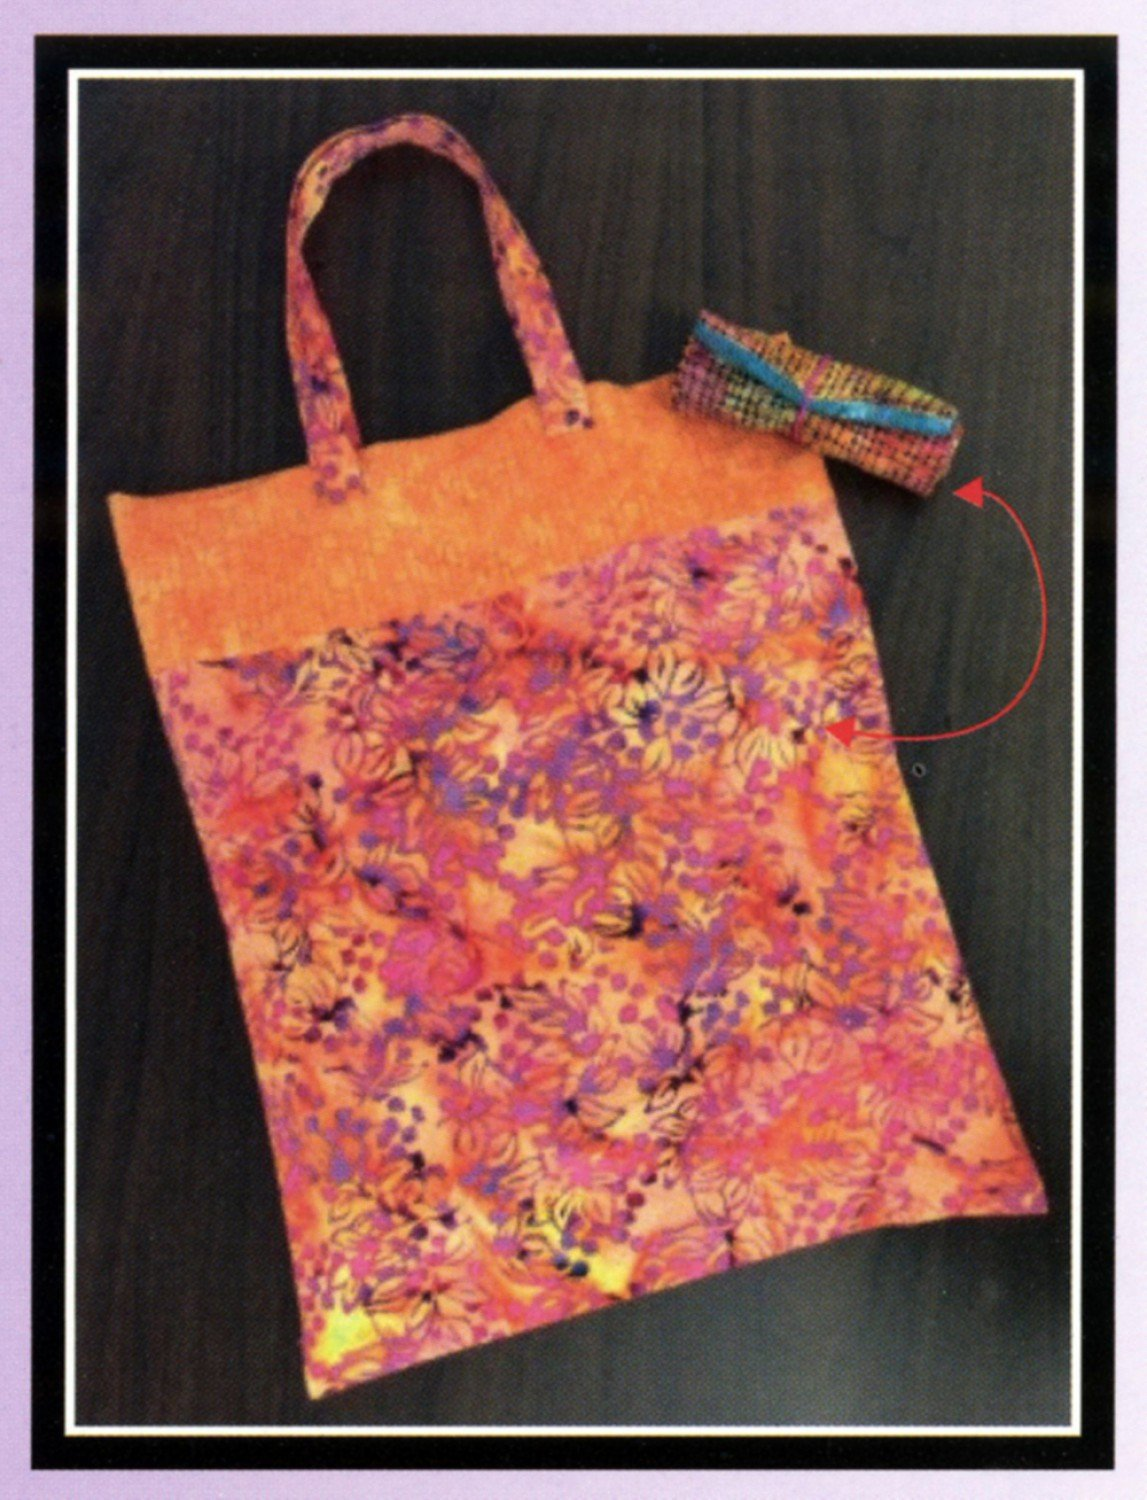 Stow & Go Tote Project Sheet